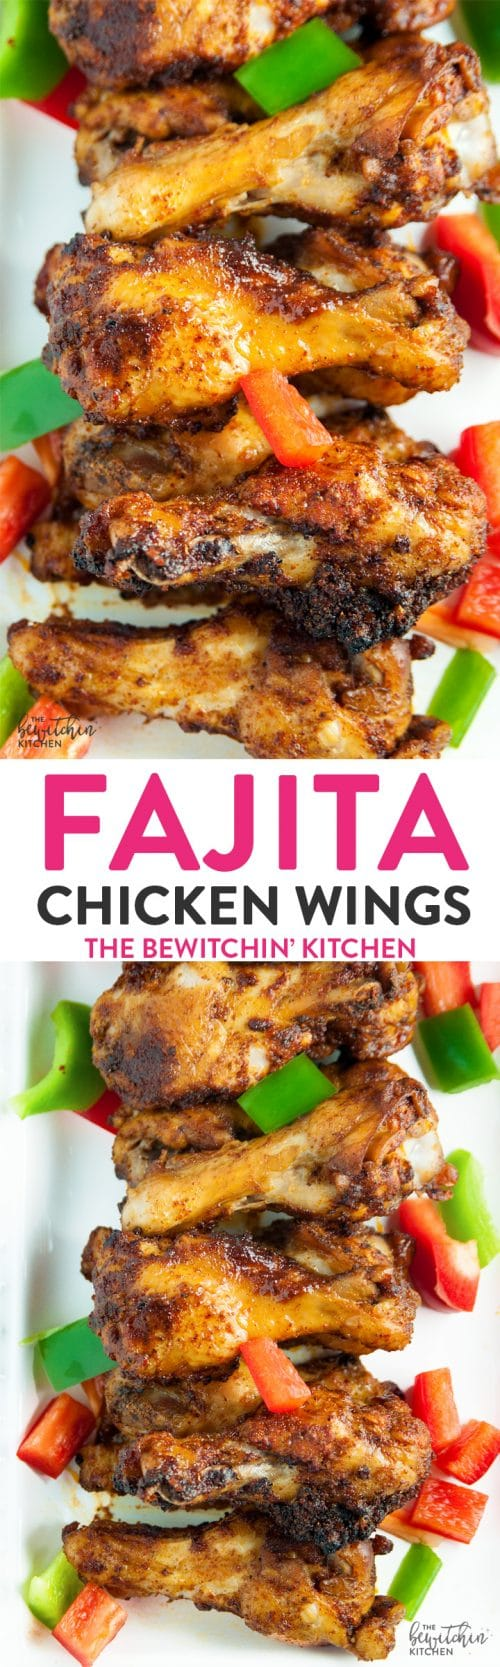 Fajita Chicken Wings - a southwestern twist on hot wings with a bite of lime. Whole 30 appetizer that also makes a great paleo dinner recipe.